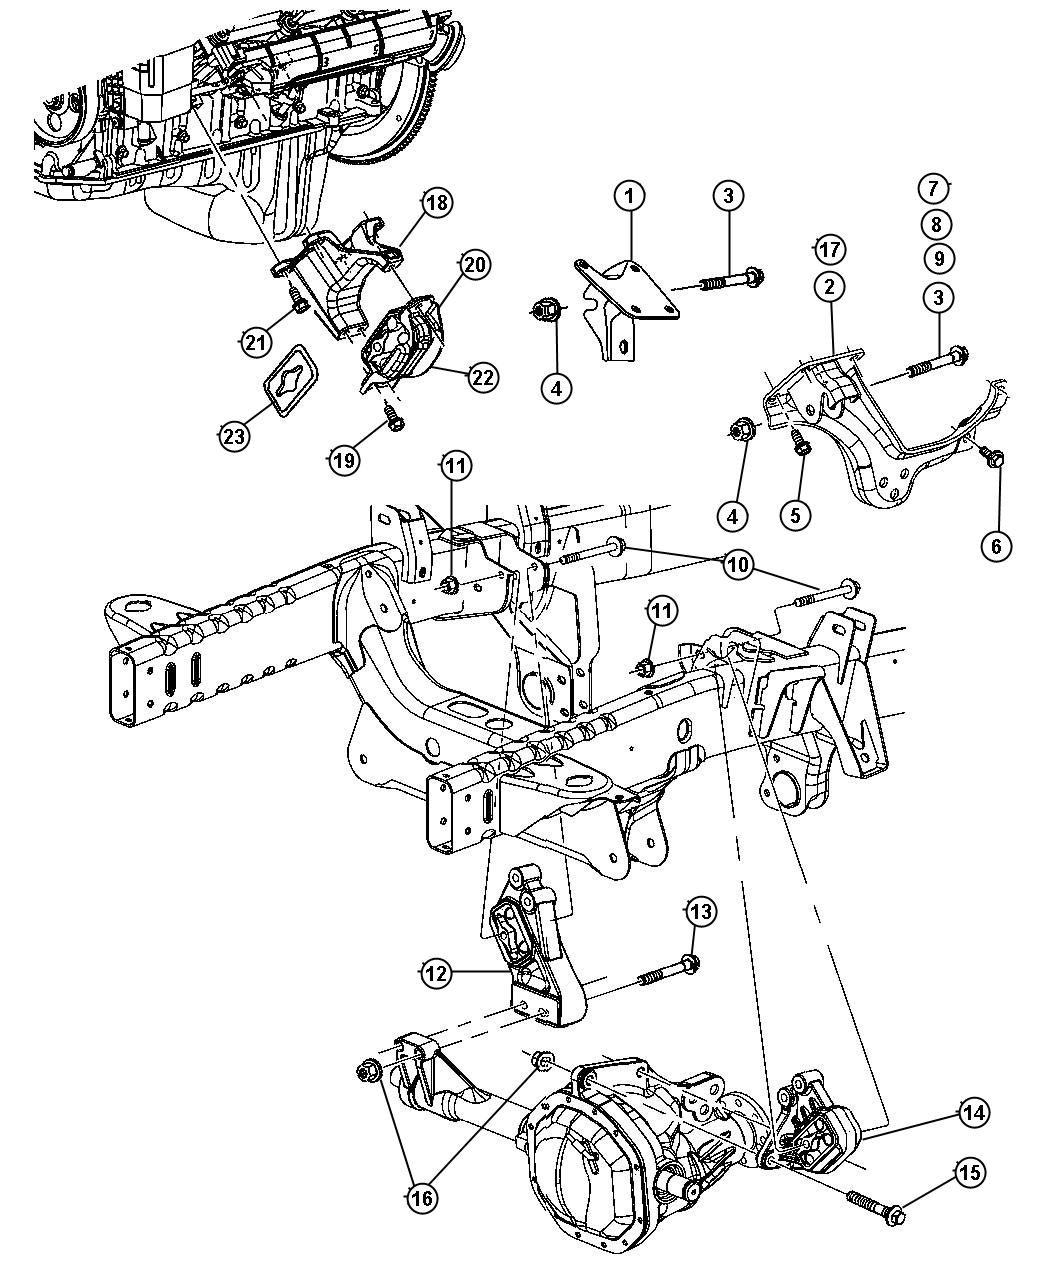 Dodge Ram Used For Bolt And Washer Used For